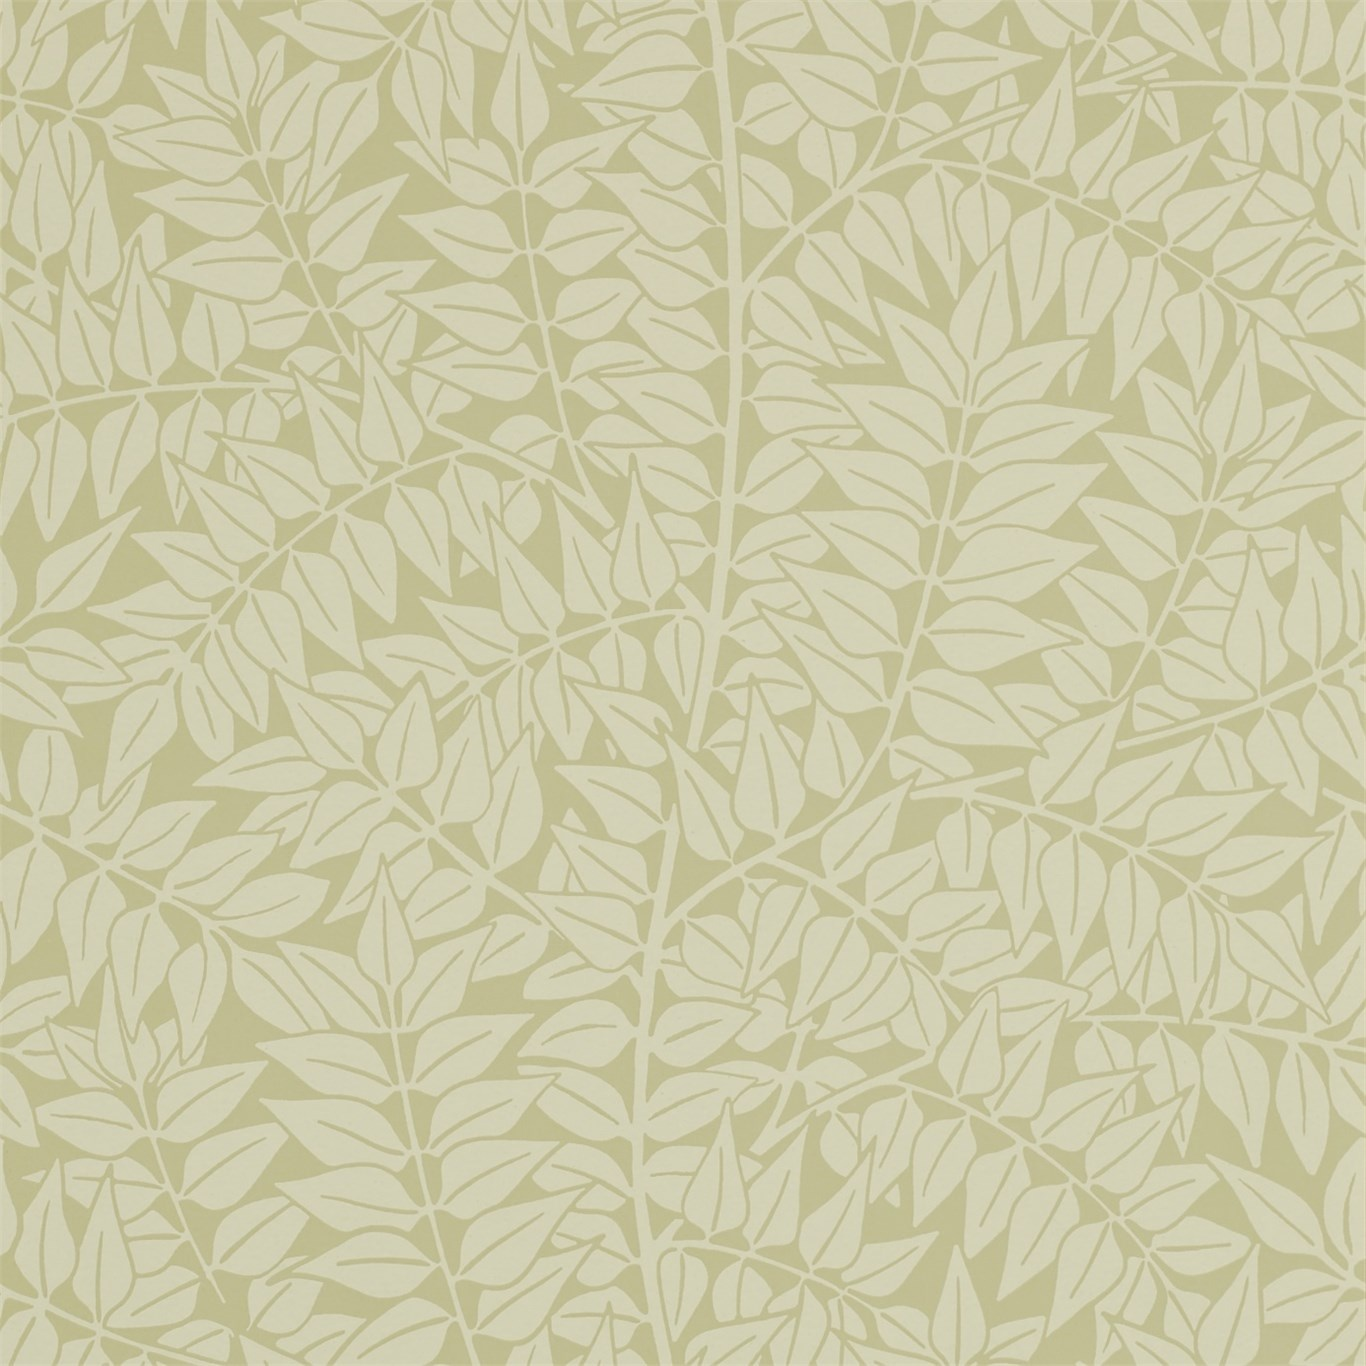 Image of Morris & Co Branch Catkin Wallpaper 210376